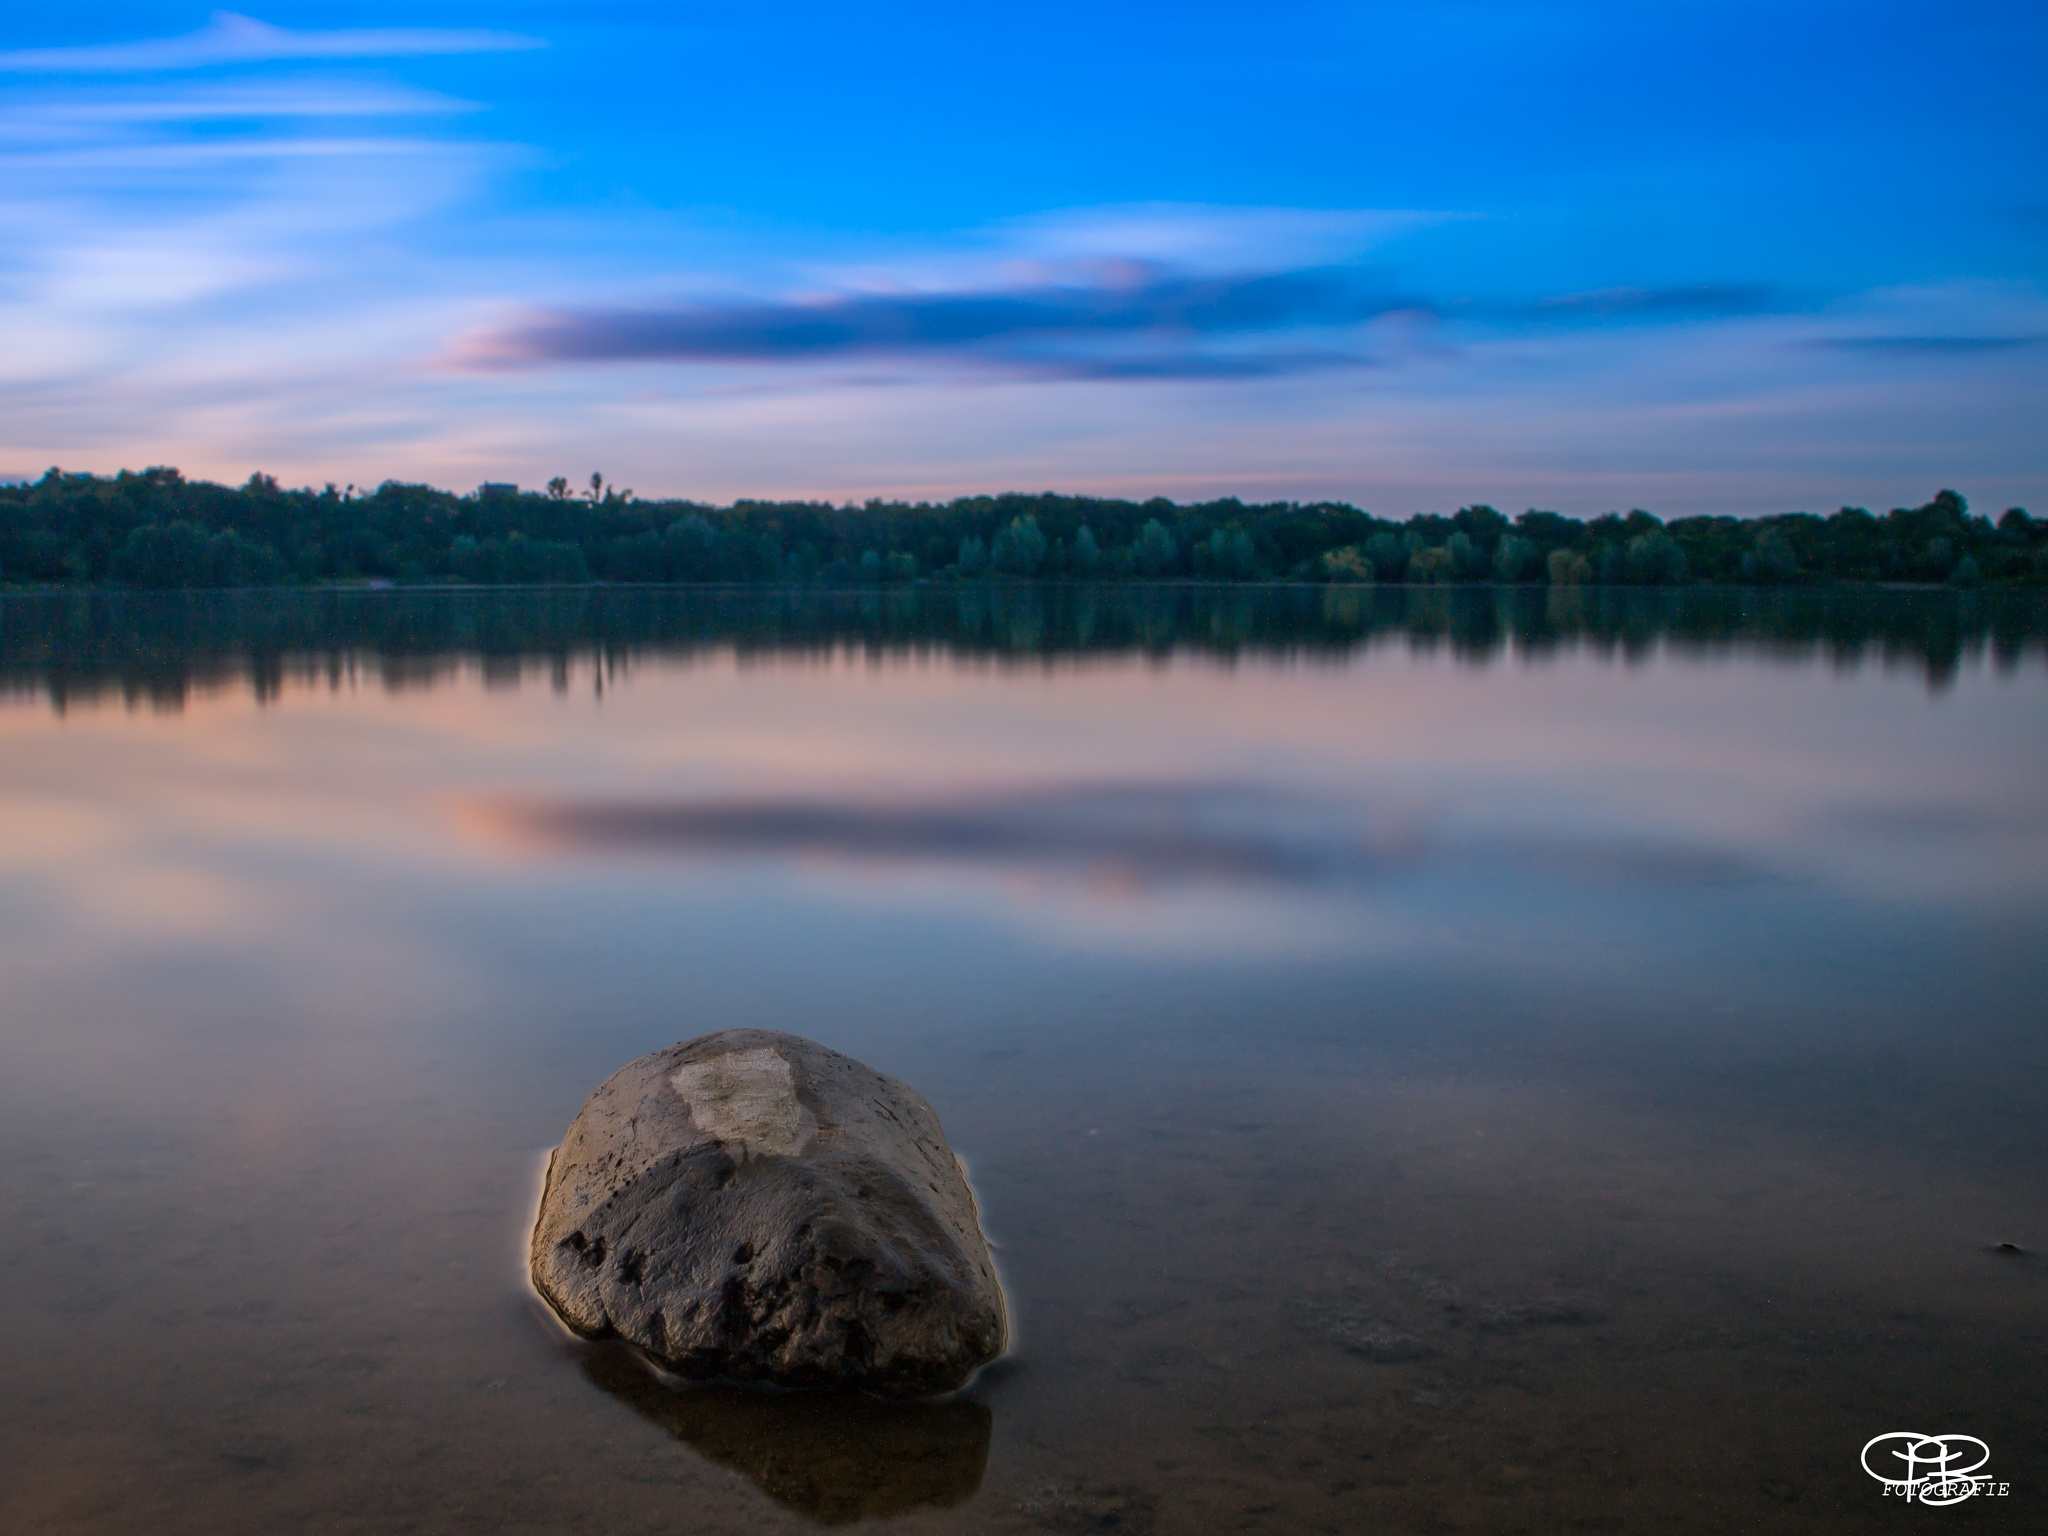 The bauty of a Lake by PBFotografie